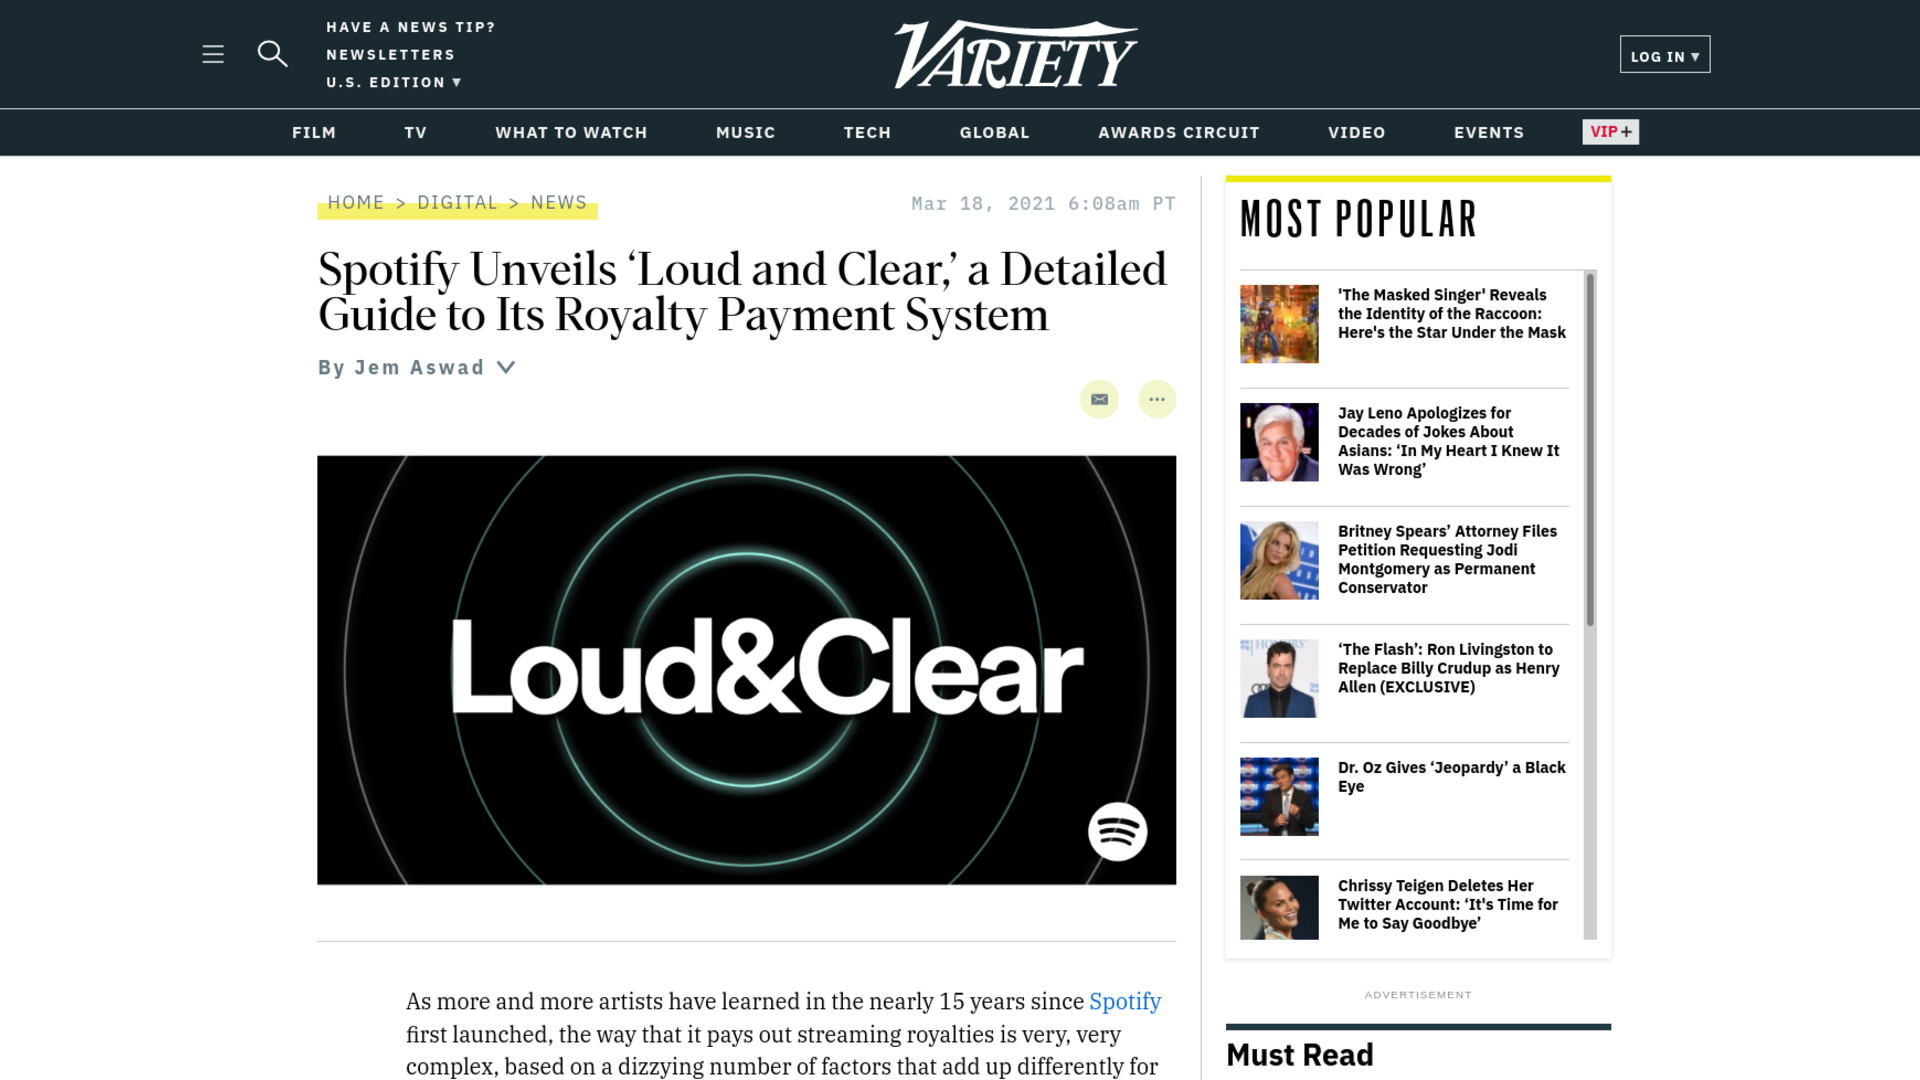 Fairness Rocks News Spotify Unveils 'Loud and Clear,' a Detailed Guide to Its Royalty Payment System